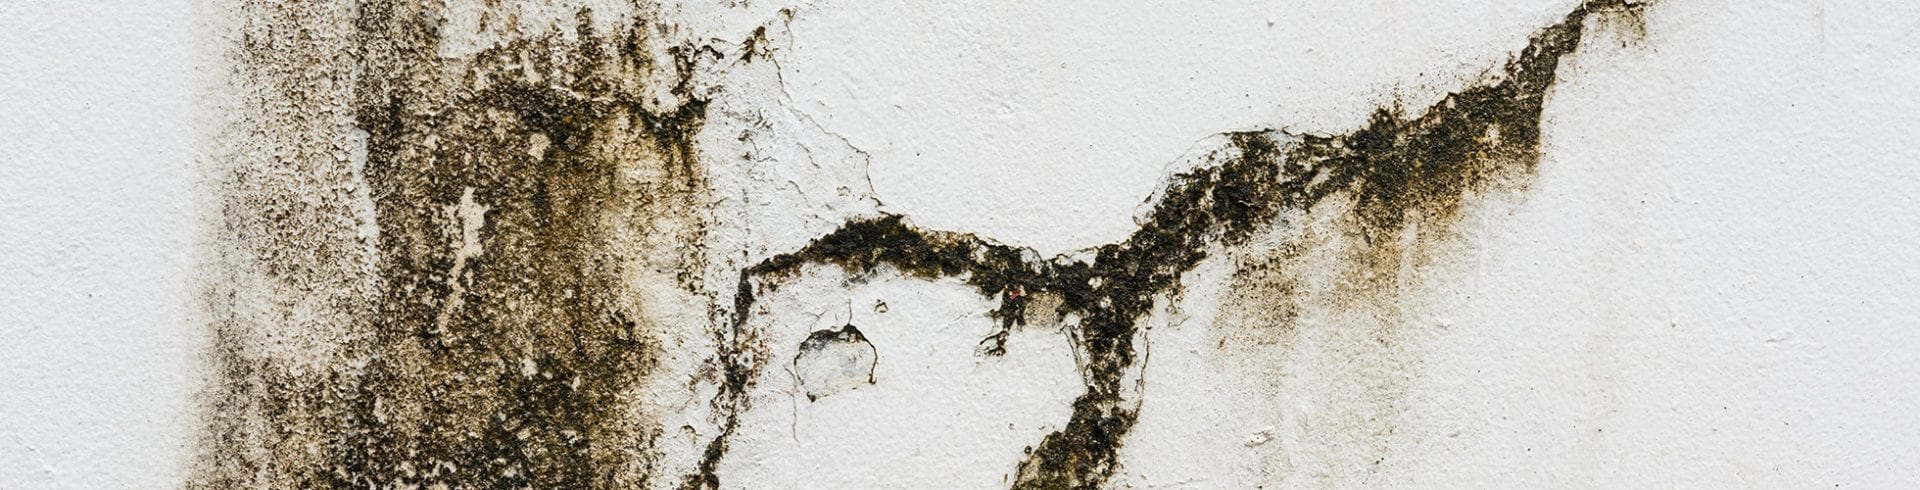 Preventing Mold in High Traffic Areas | Blog | MoldOff®